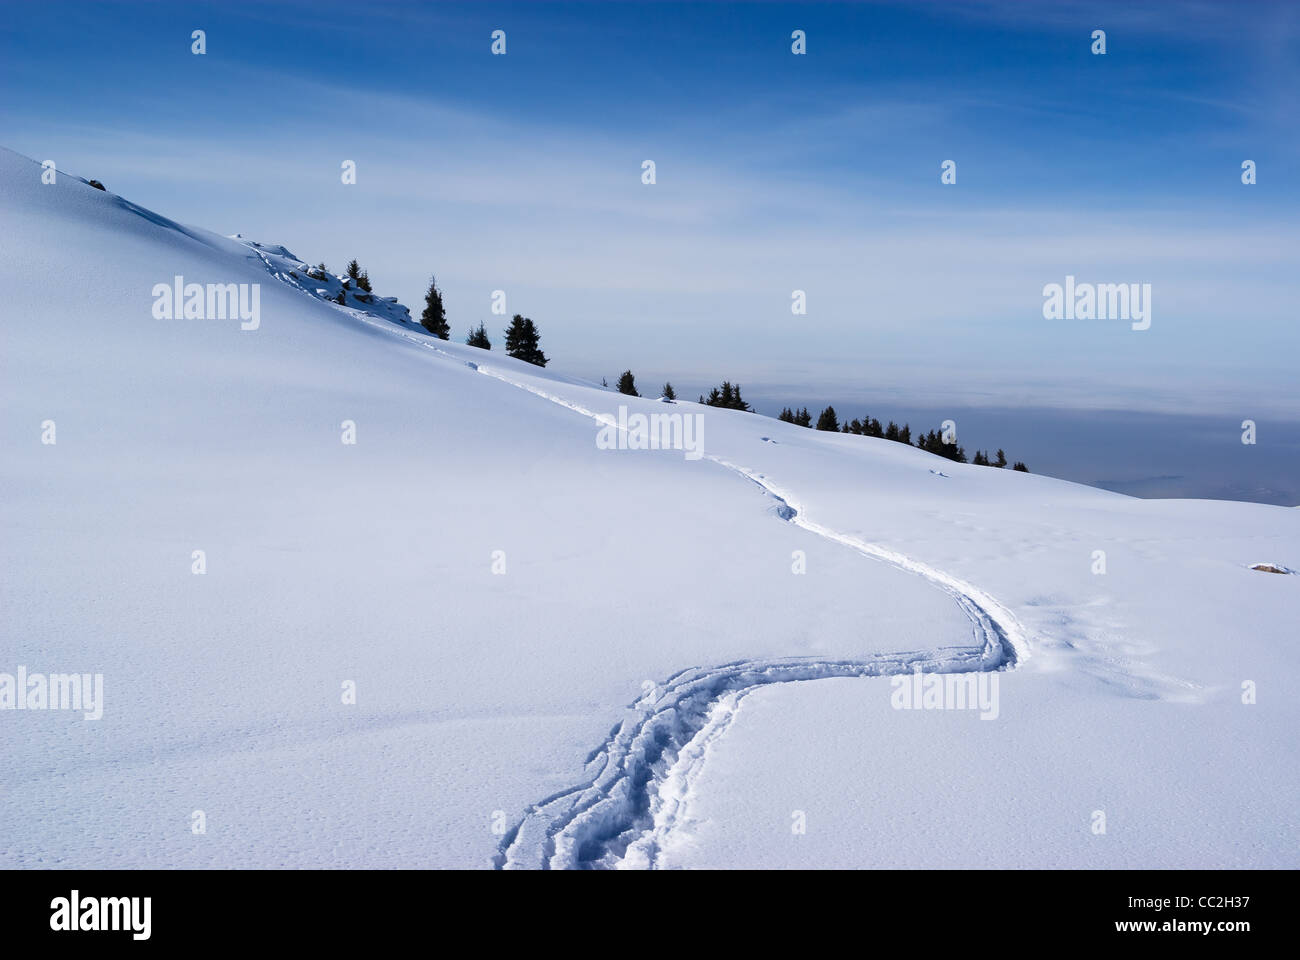 Footpath in winter mountains - Stock Image